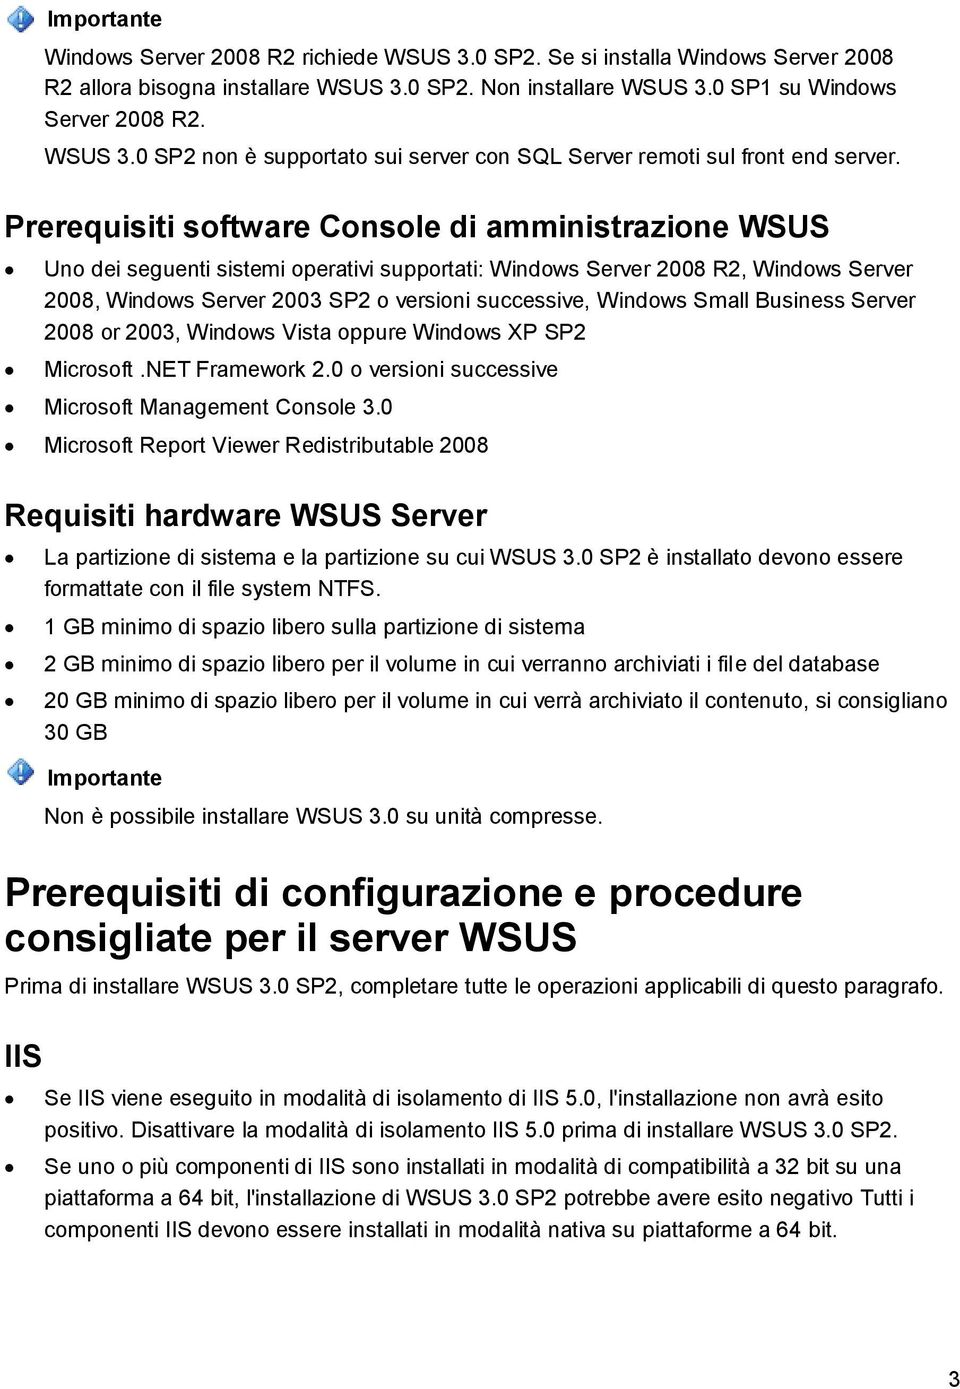 Windows Small Business Server 2008 or 2003, Windows Vista oppure Windows XP SP2 Microsoft.NET Framework 2.0 o versioni successive Microsoft Management Console 3.